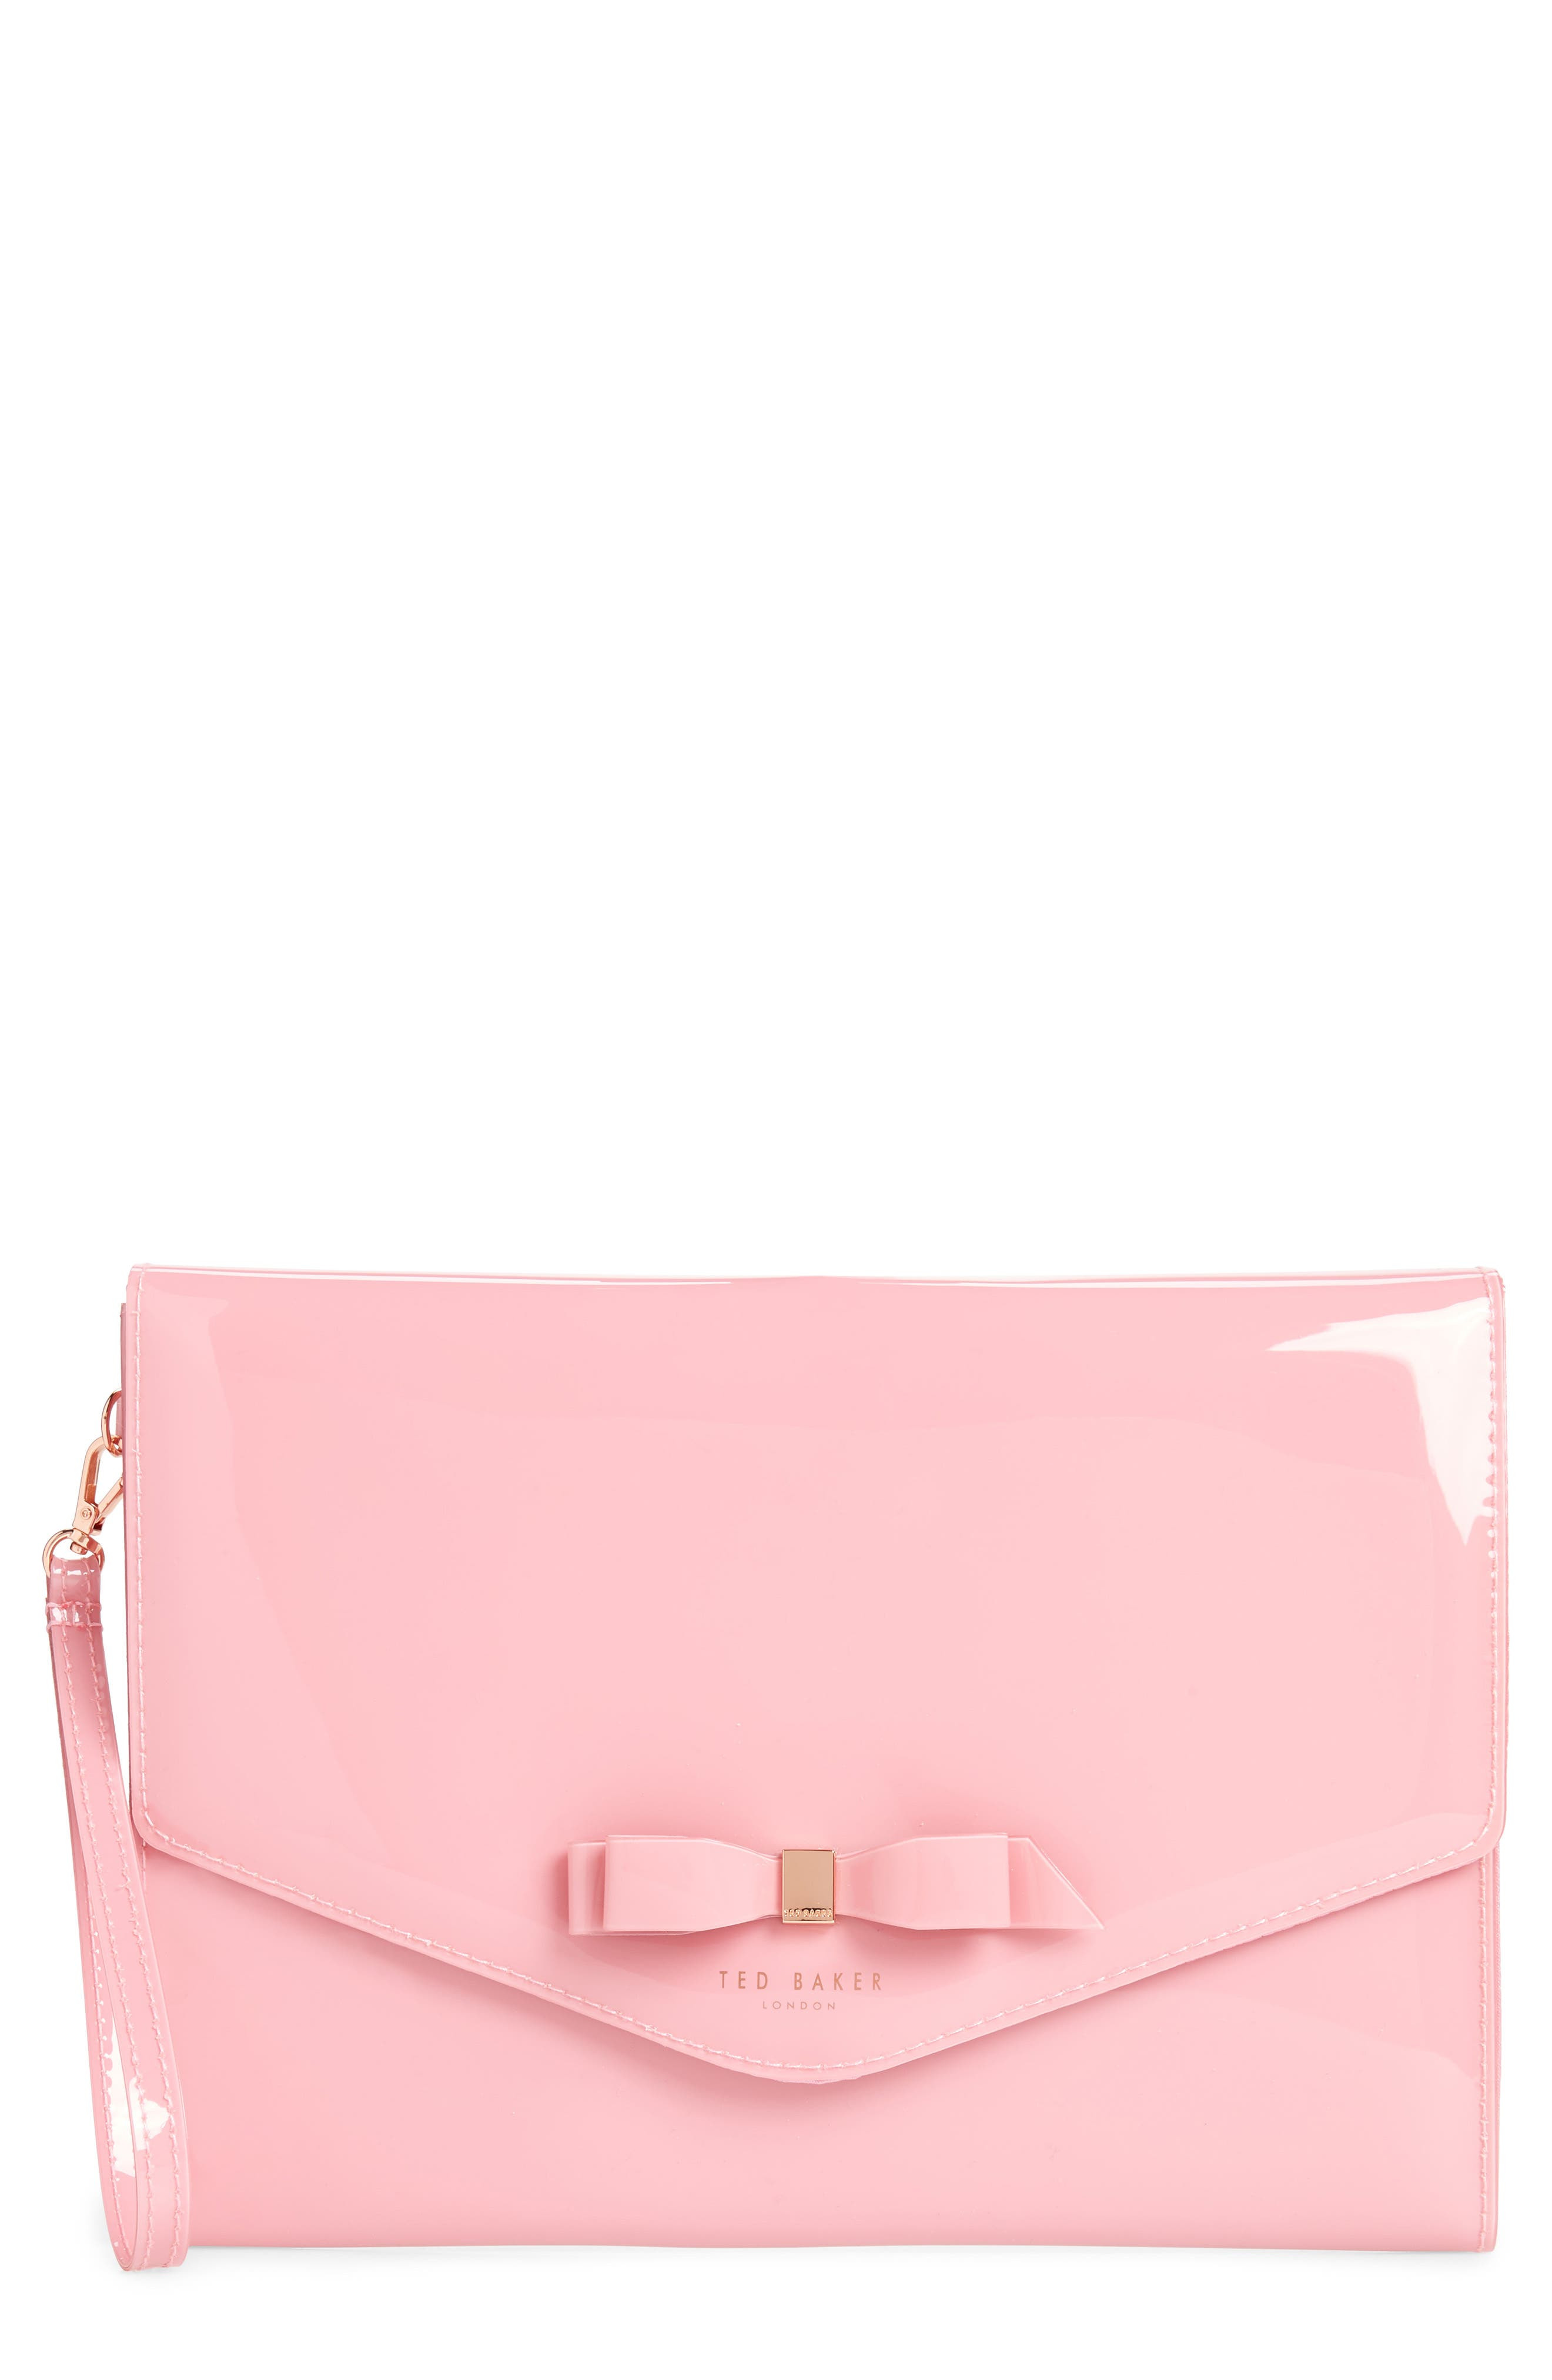 afbb5fa3031e52 Ted Baker London Clutches   Pouches